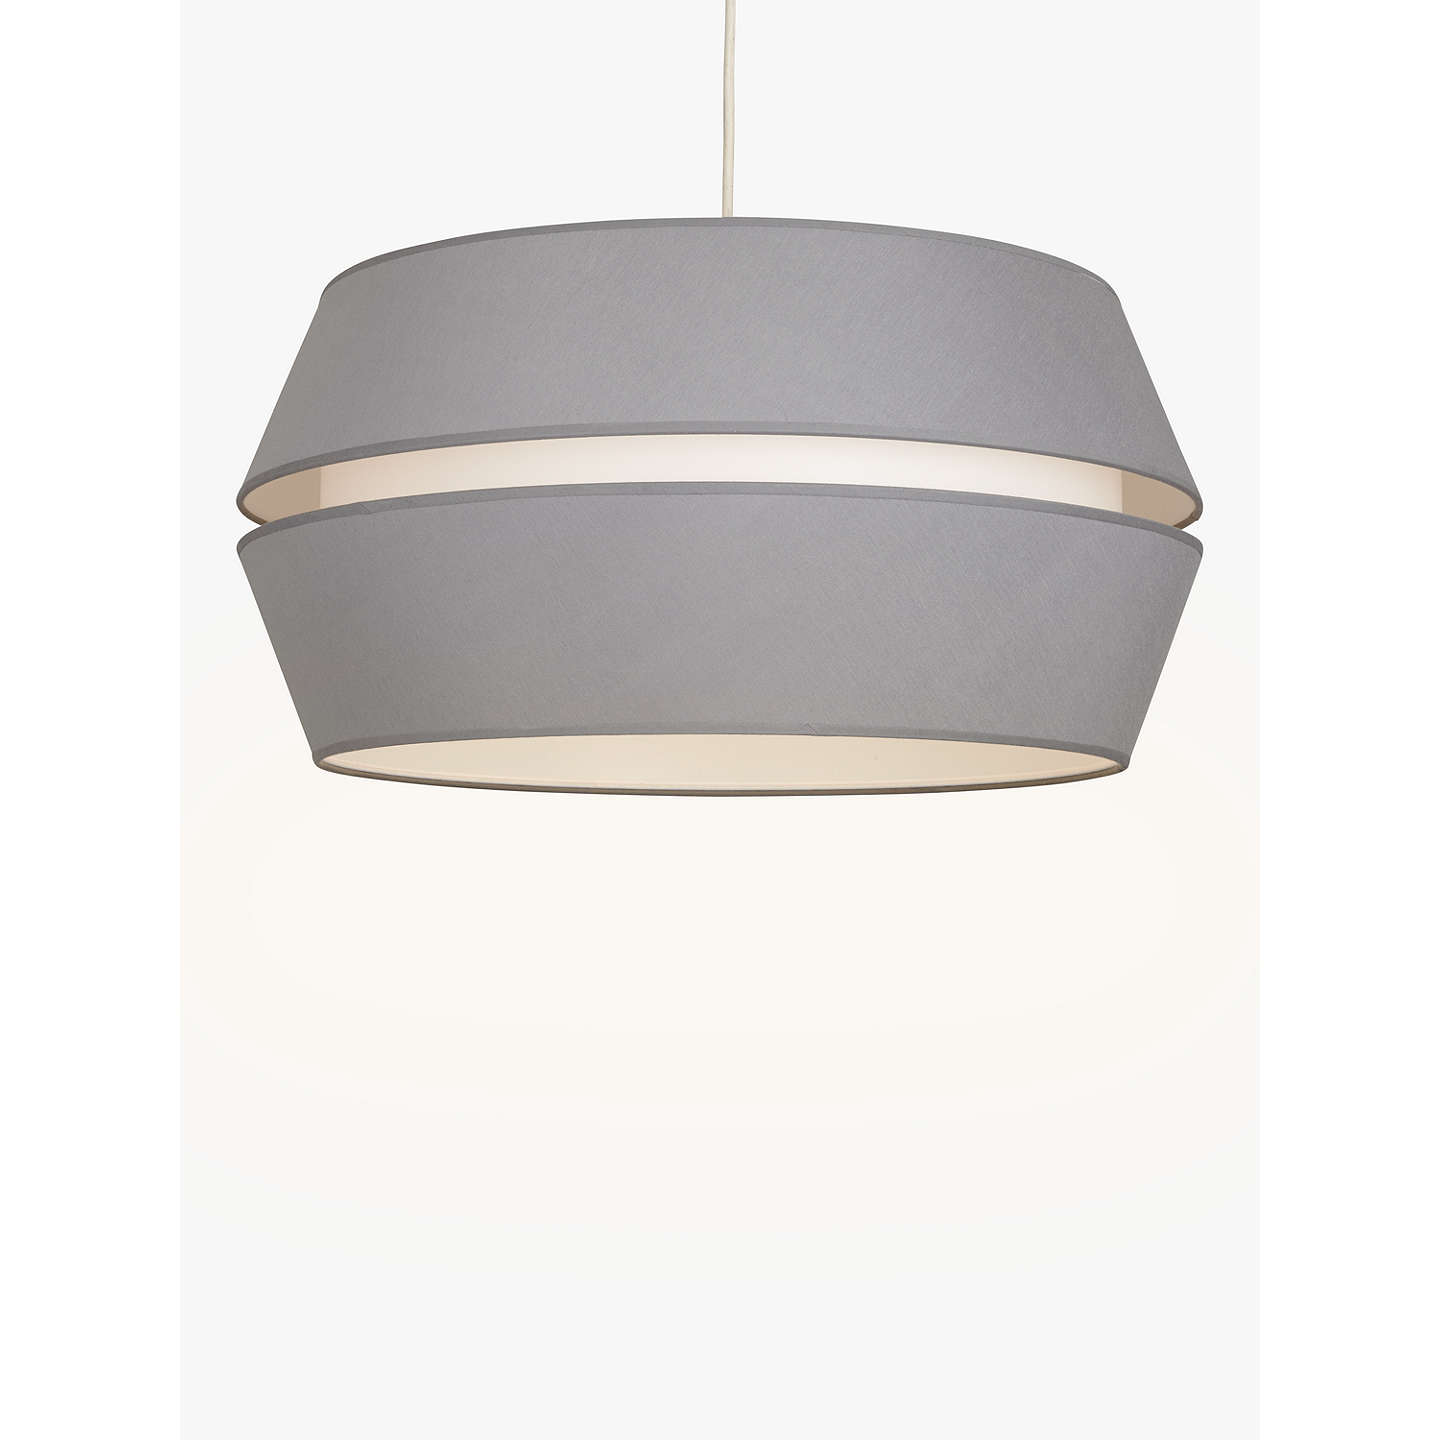 John lewis ingrid easy to fit shade grey at john lewis buyjohn lewis ingrid easy to fit shade grey online at johnlewis aloadofball Choice Image